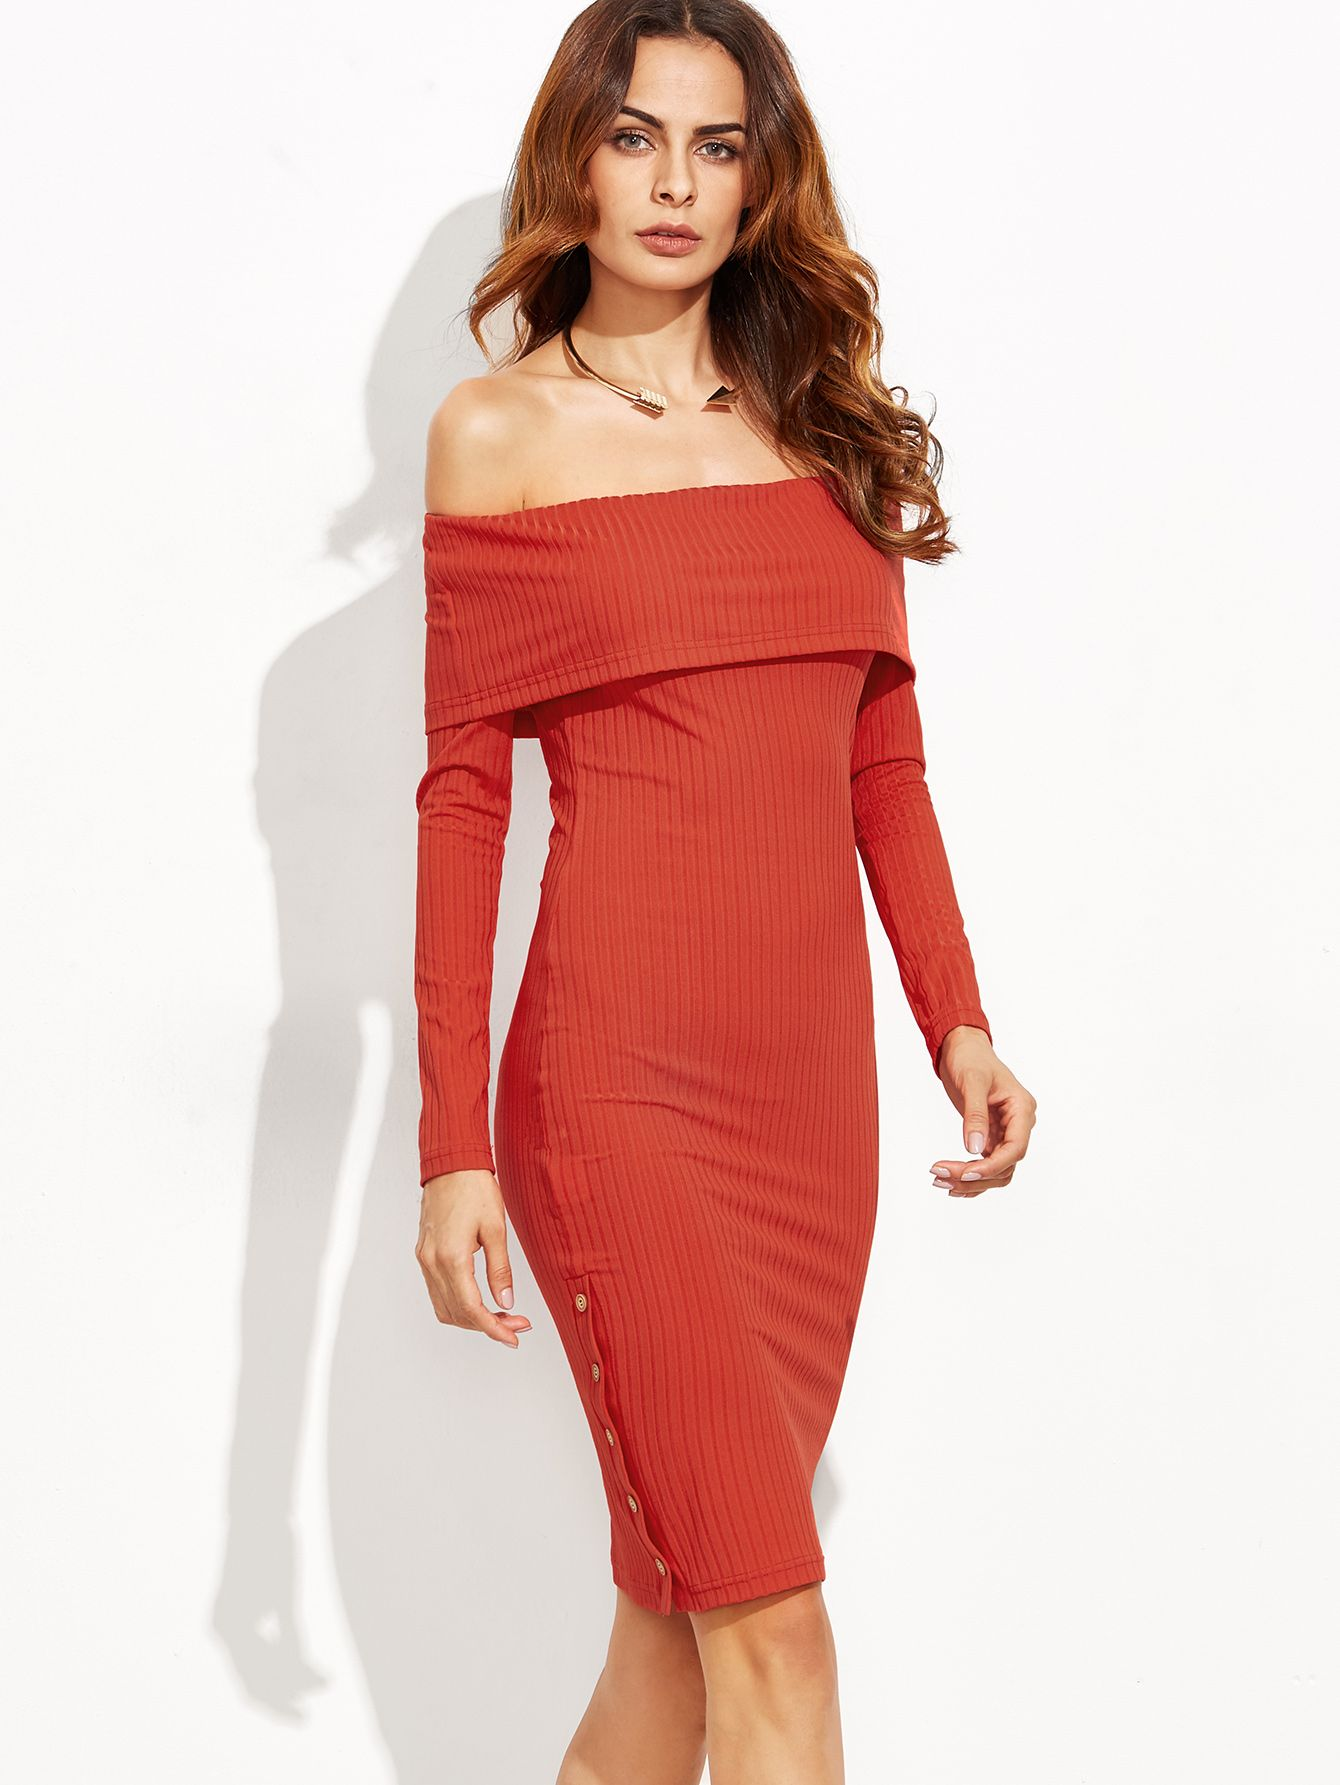 db5226151e1e Red Foldover Off The Shoulder Button Side Ribbed Dress. Red Elegant  Polyester Off the Shoulder Long Sleeve Sheath Knee Length Button Plain  Fabric is very ...